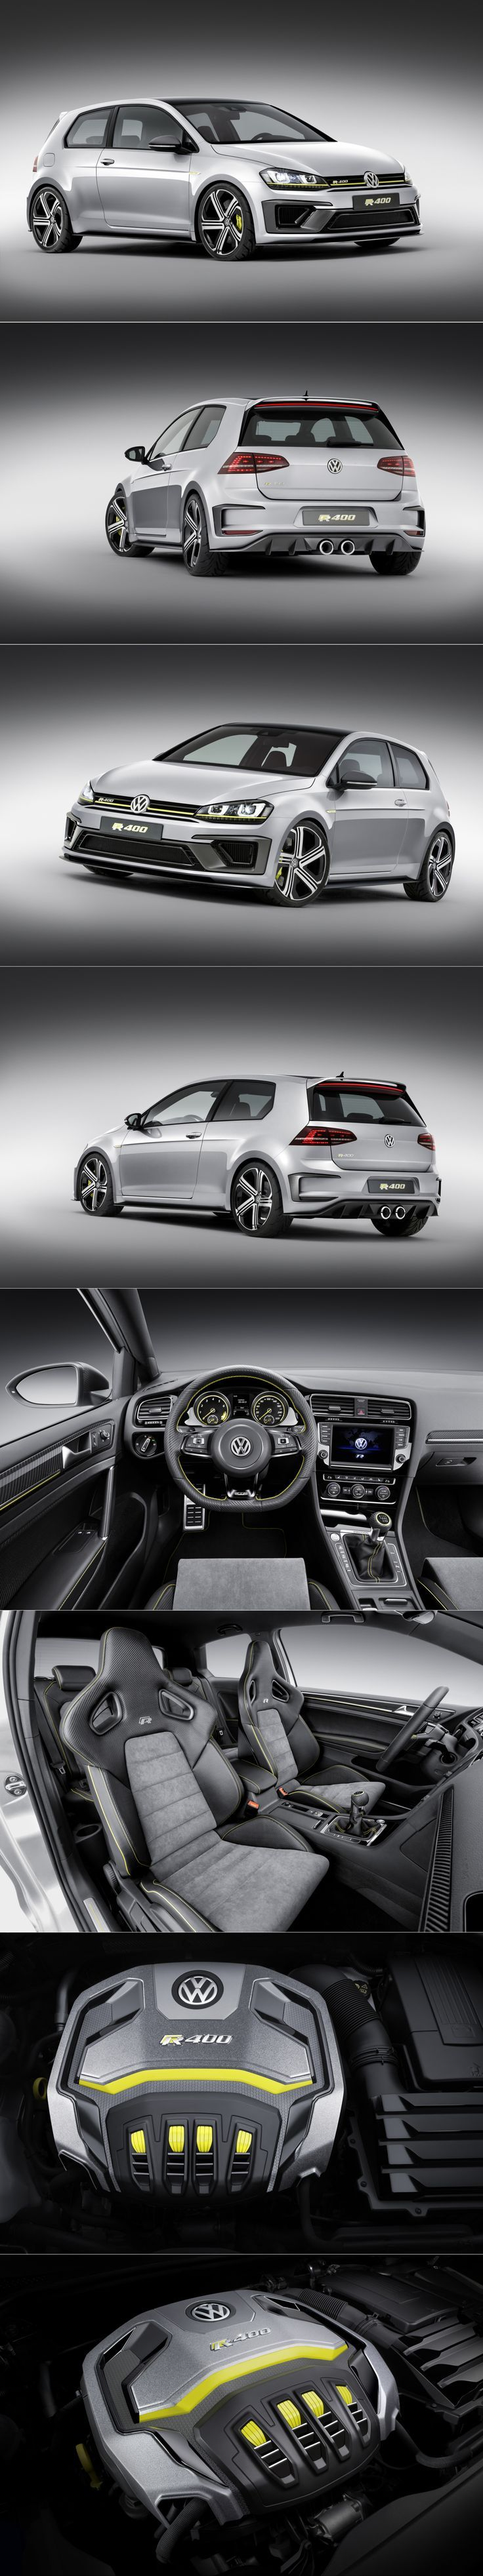 Best Dubai Luxury And Sports Cars In Dubai: The VW 400 PS GOLF R 400 SPORTS CAR CONCEPT (RUMORED FOR PRODUCTION)